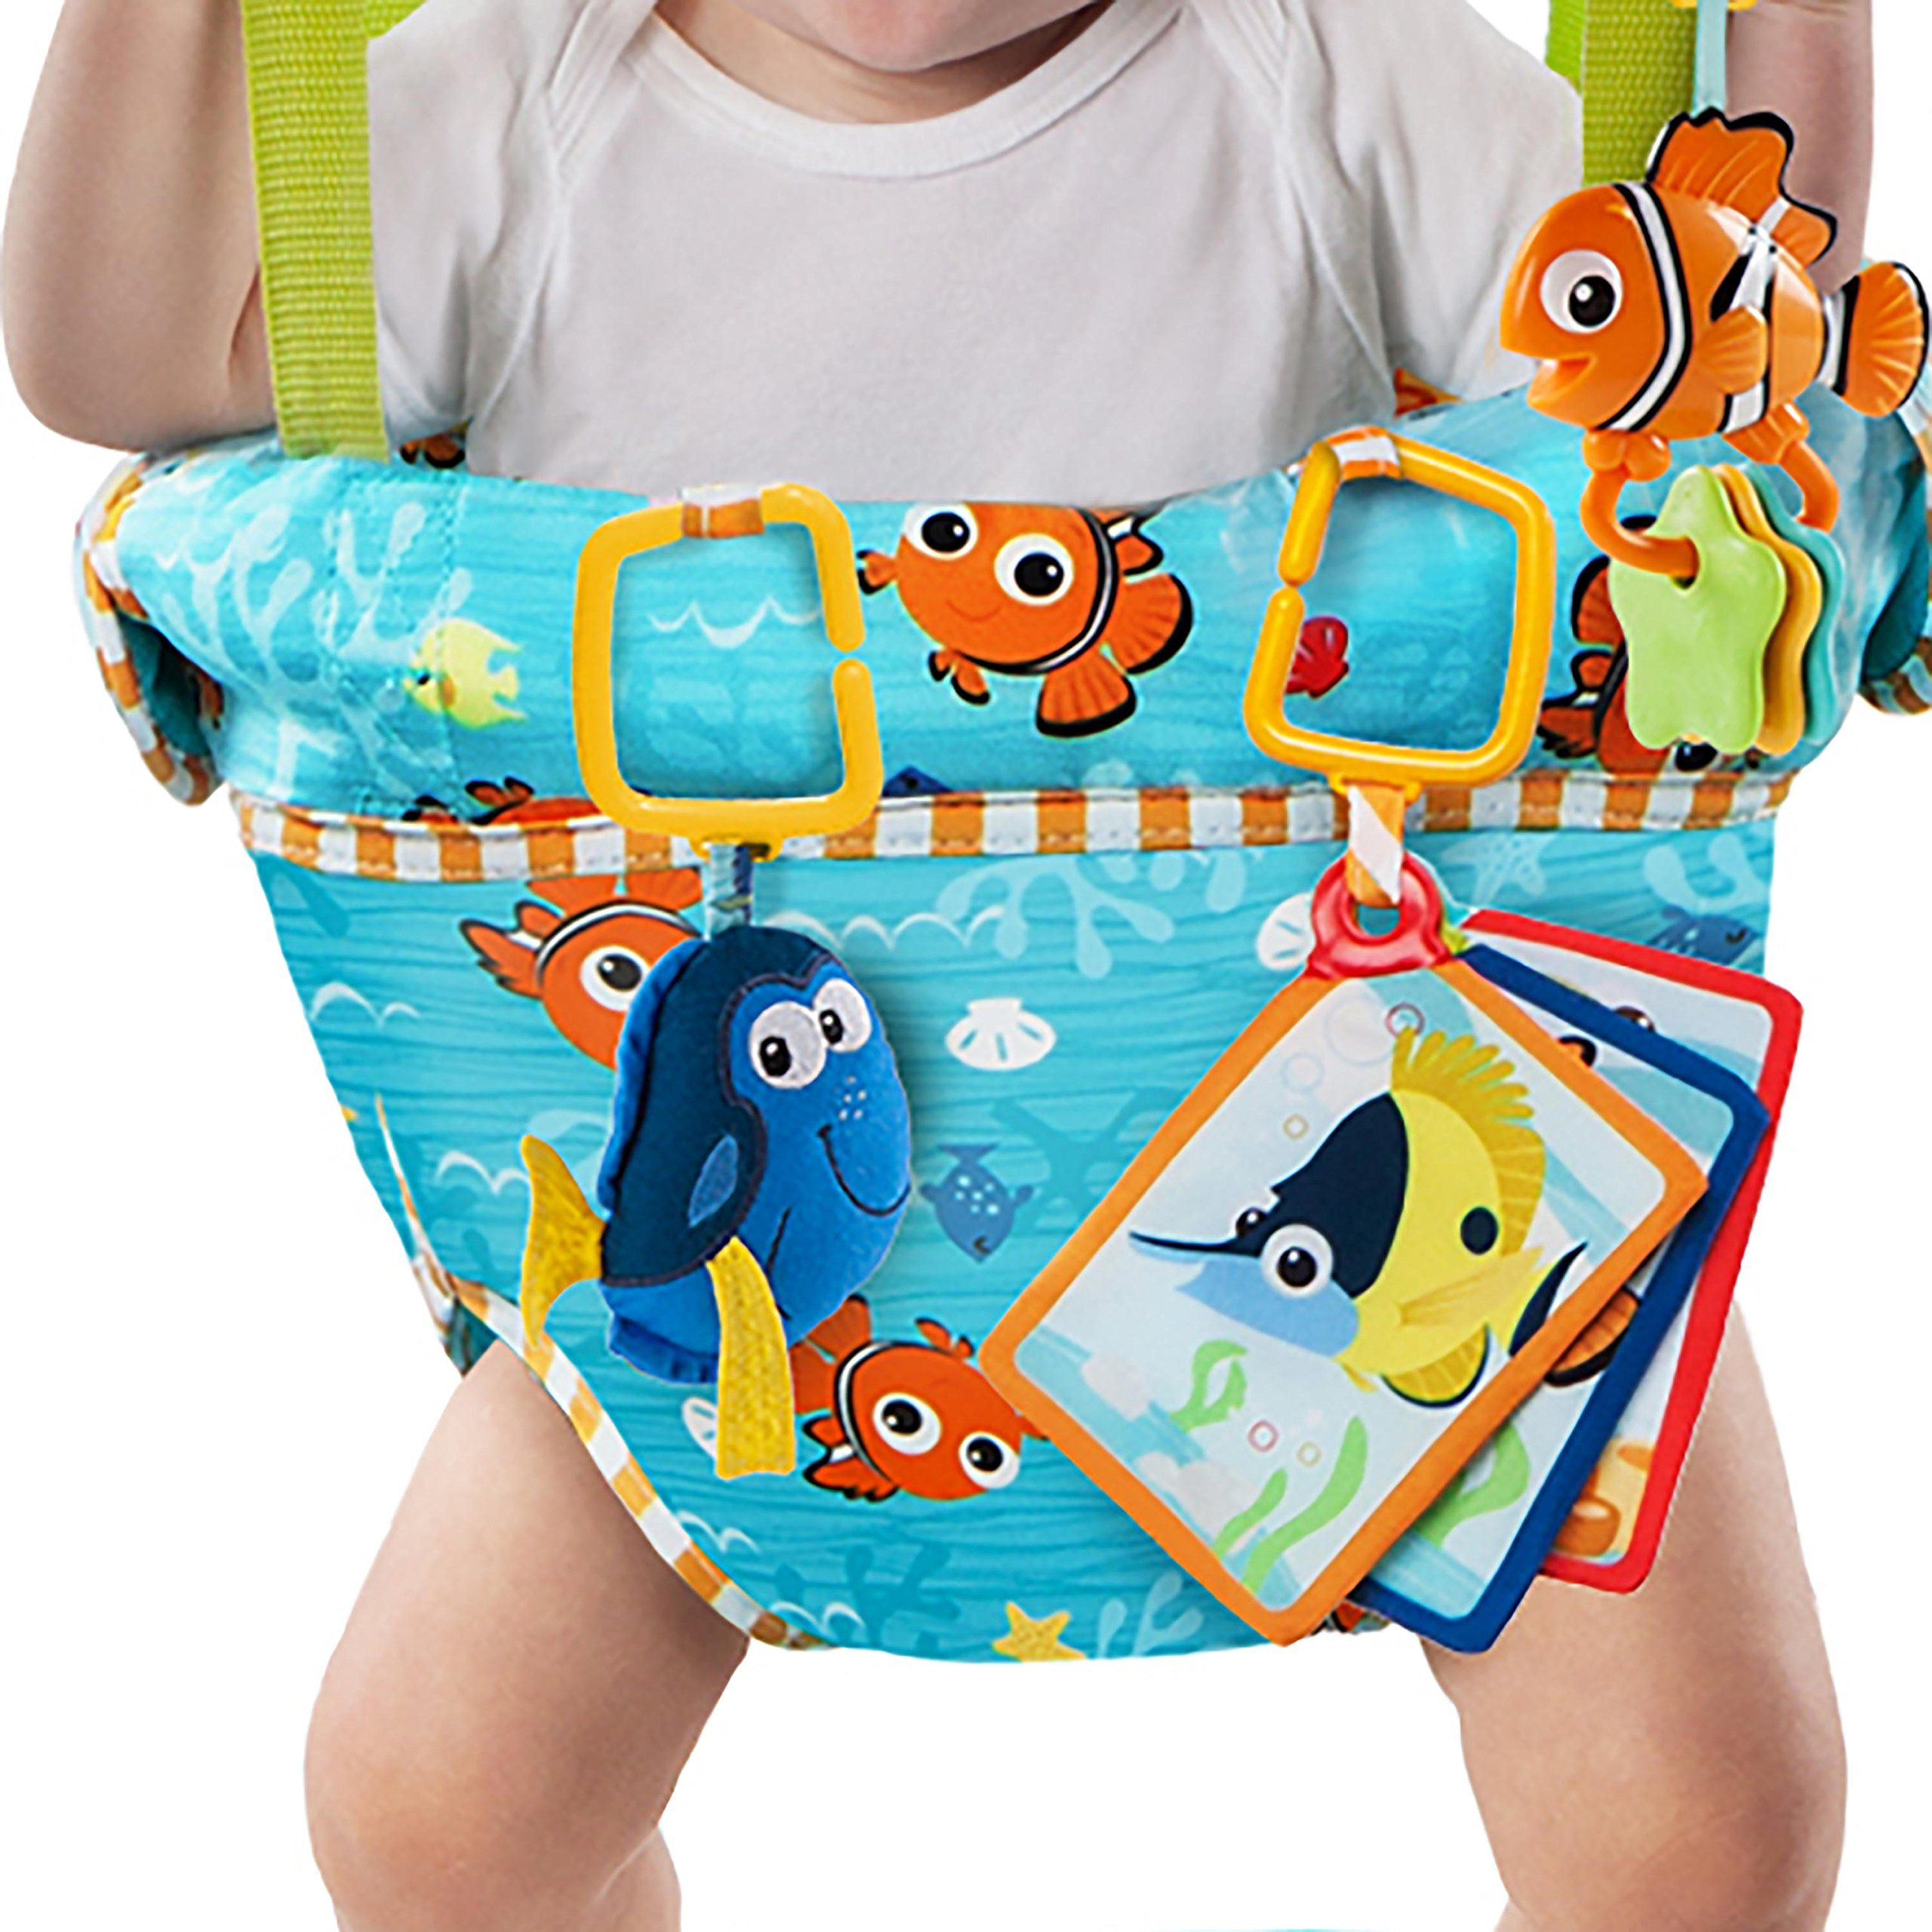 88a0ee5c7789 Disney Baby FINDING NEMO Sea of Activities Door Jumper    Be sure to ...